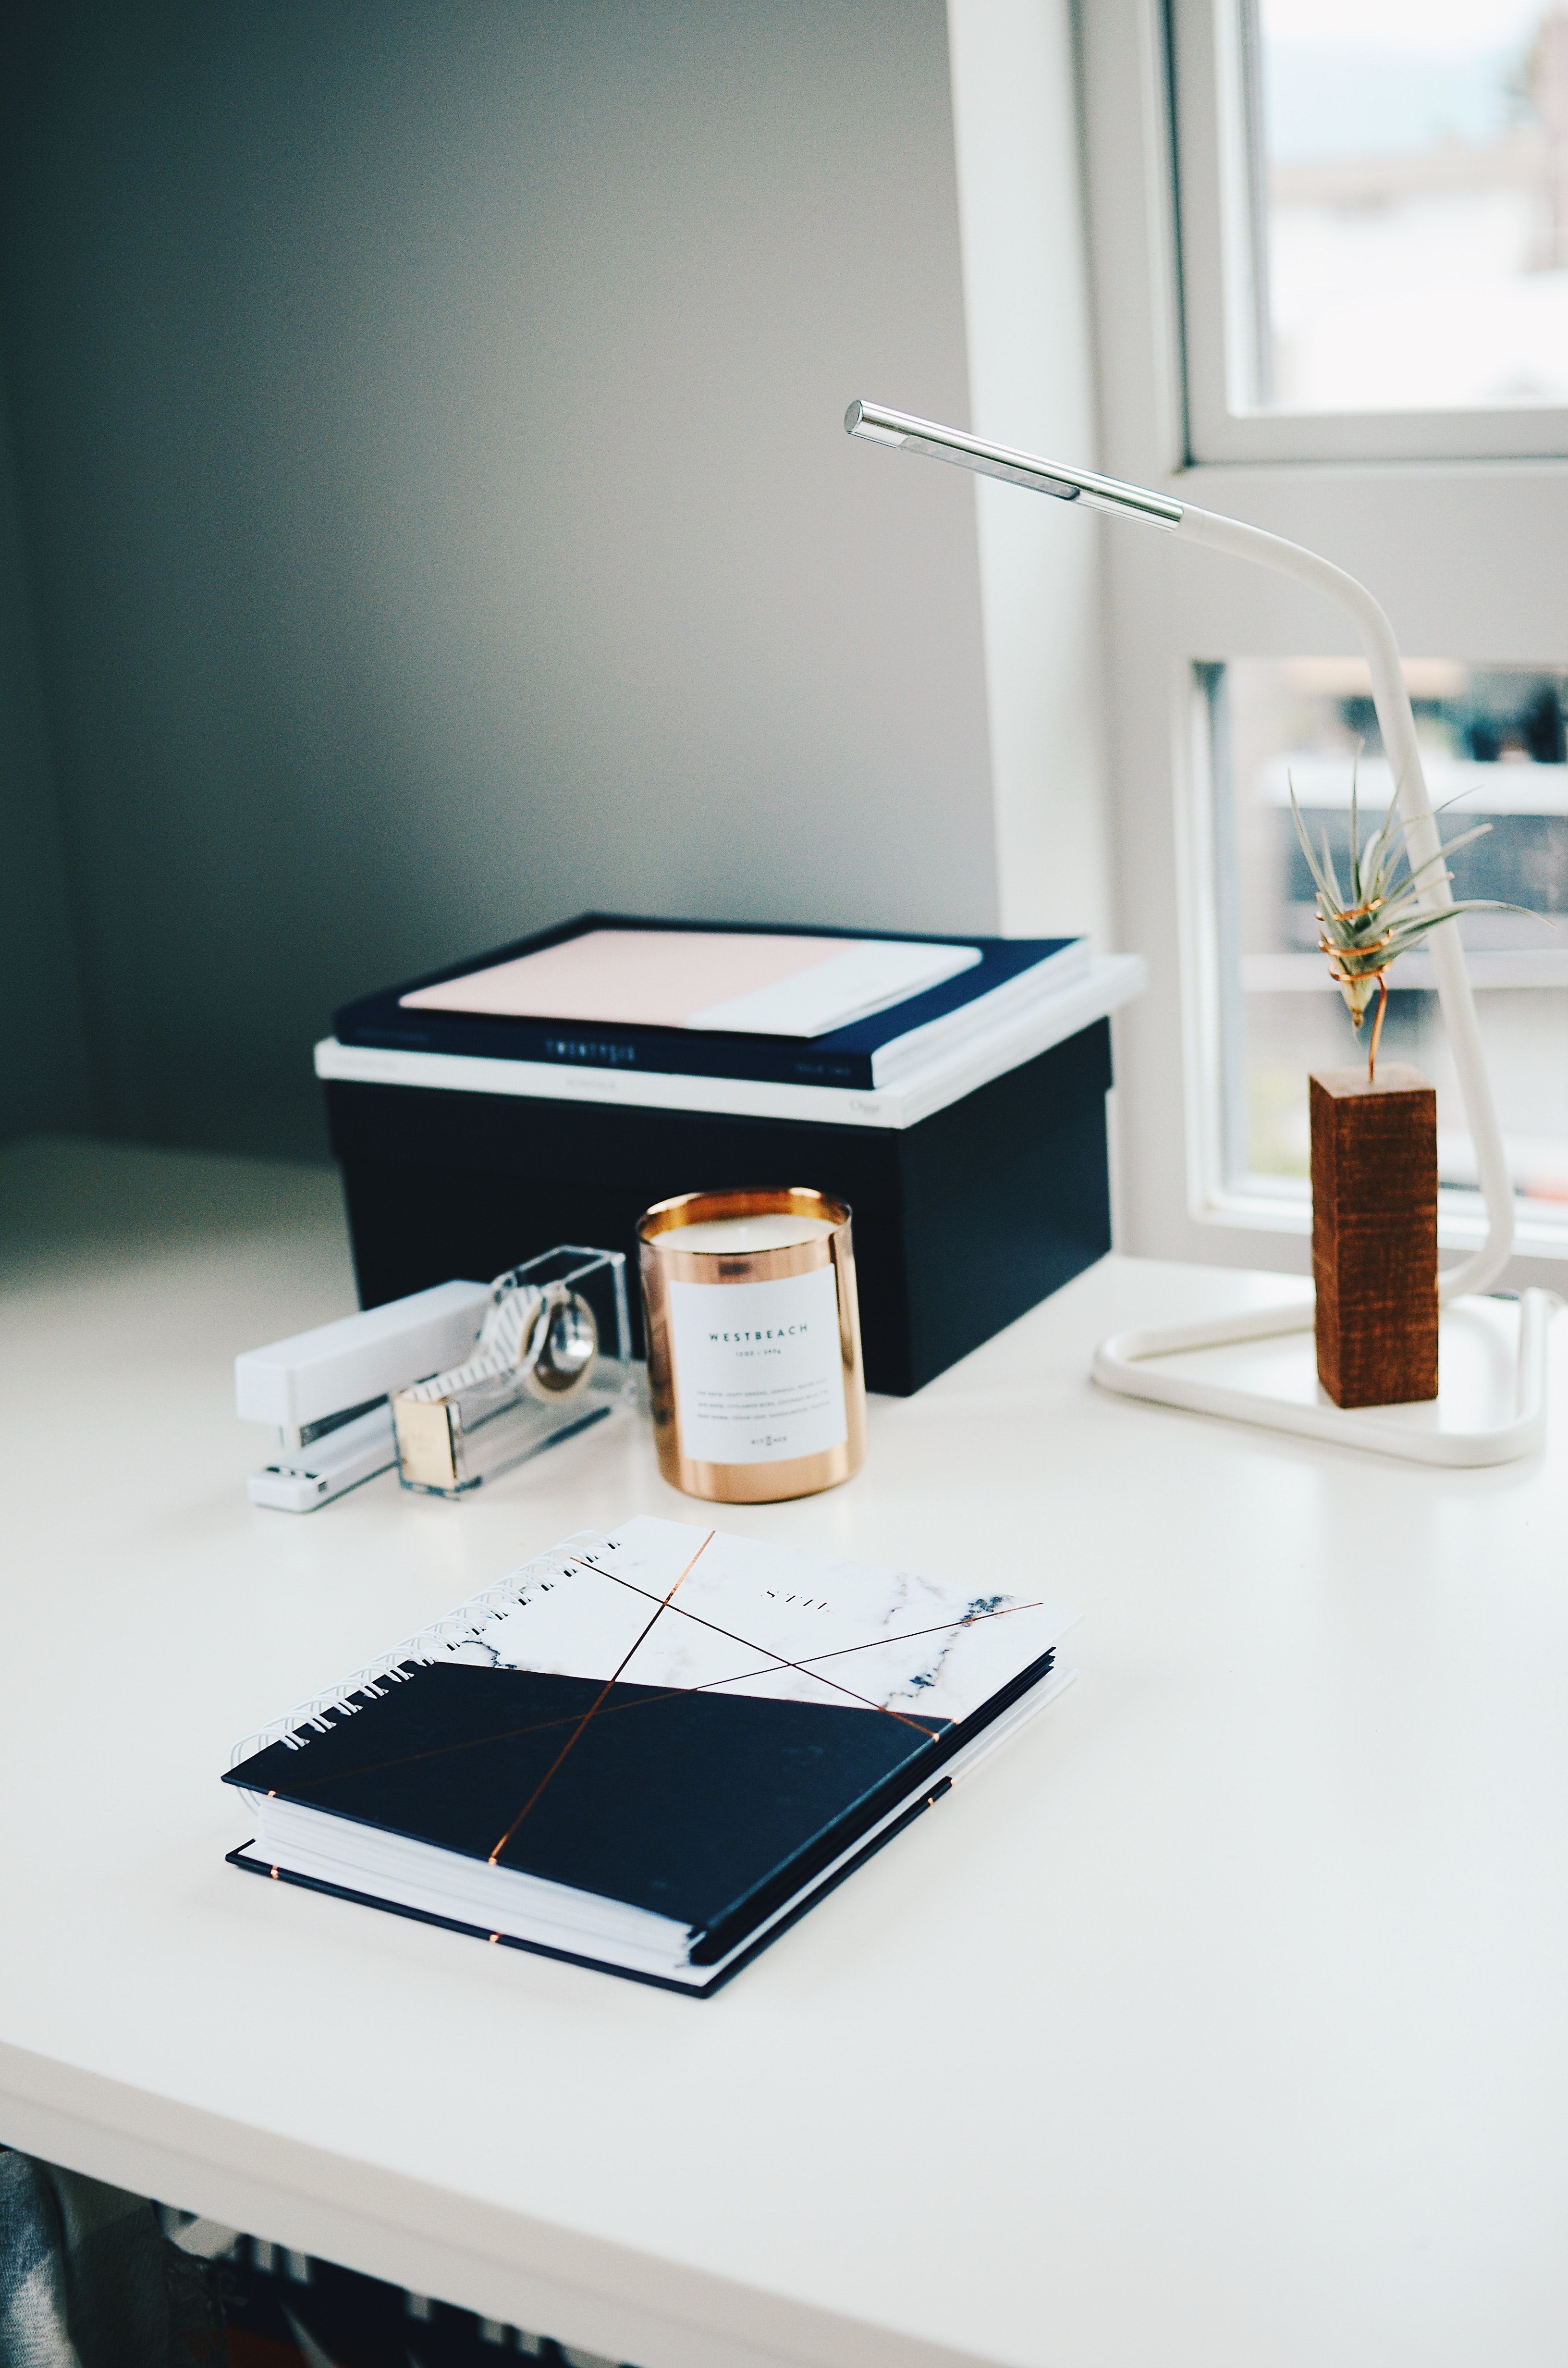 White deskspace with candle, lamp, notebook, stapler and tape dispenser